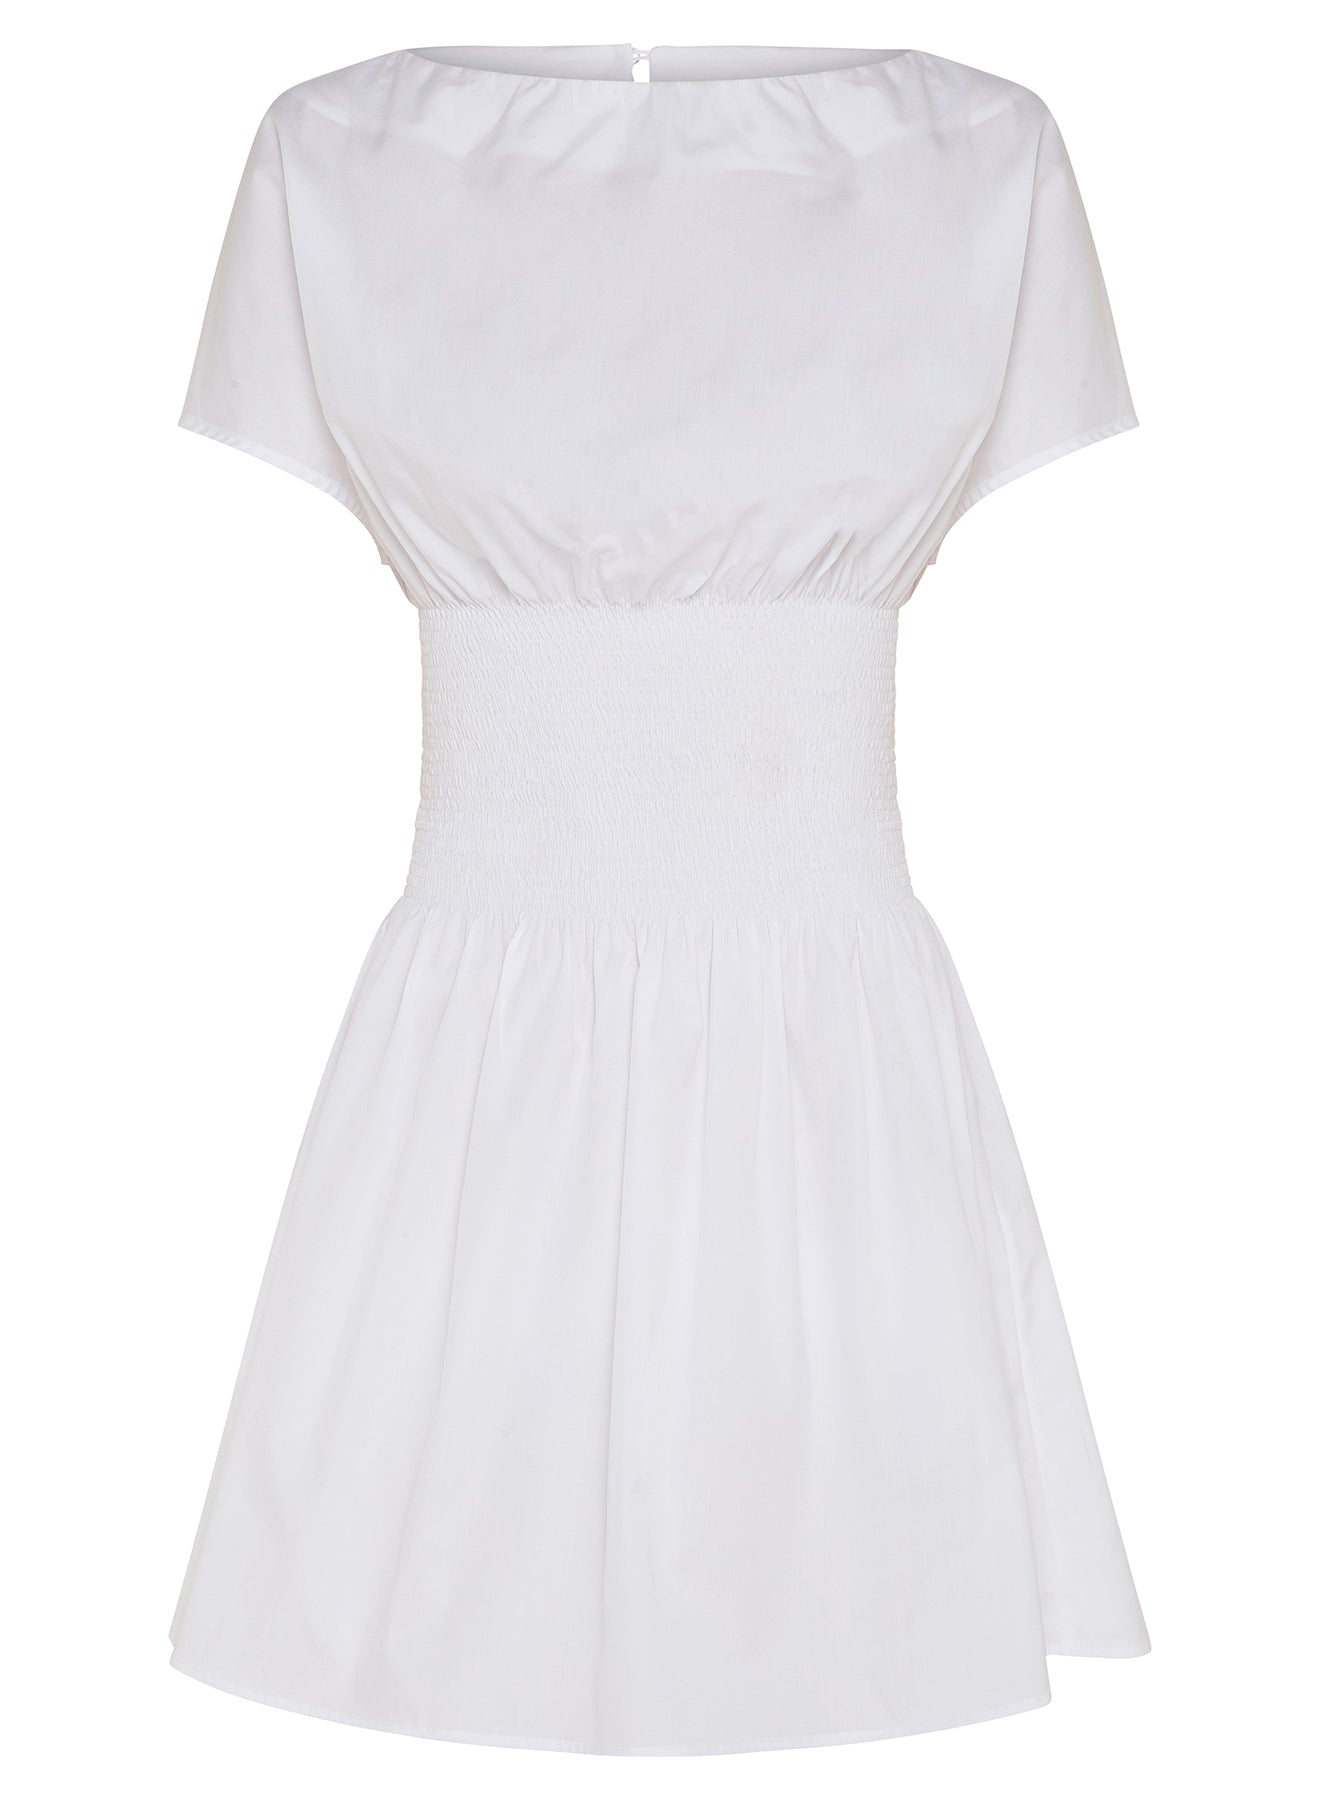 EMILY-MAE Dress (WHITE)